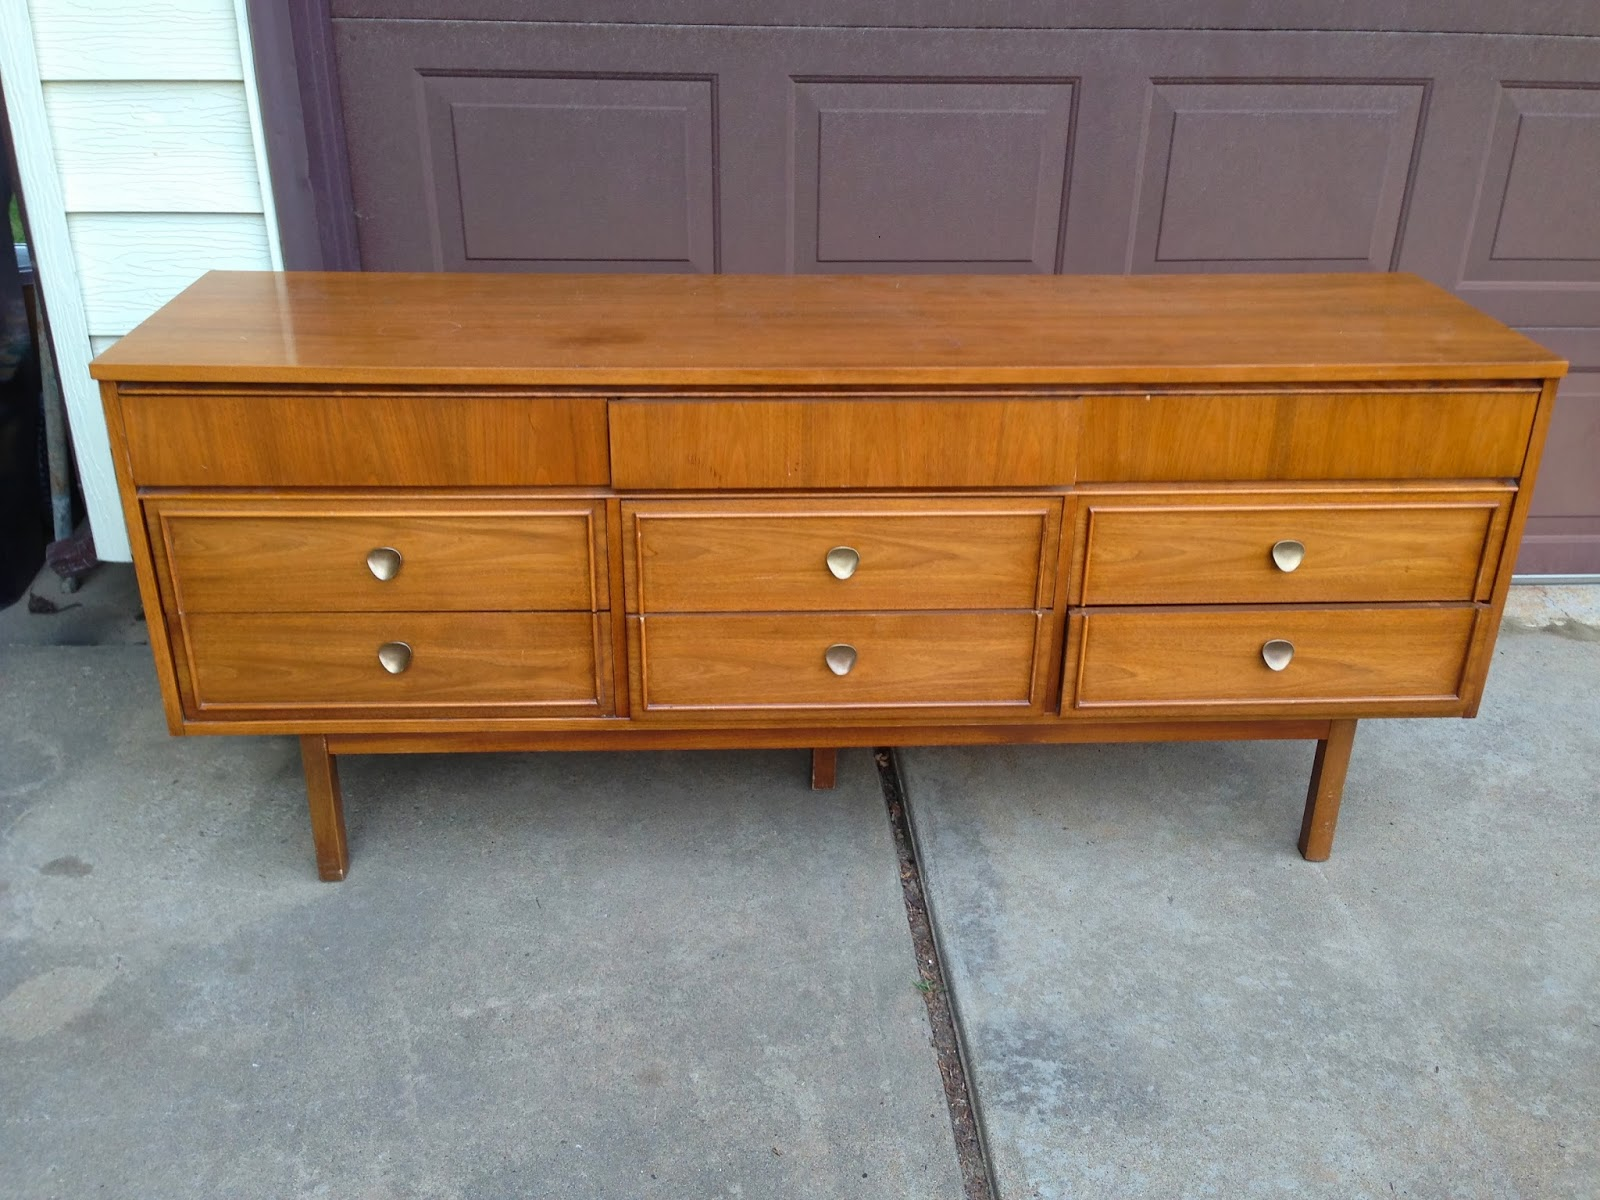 Large Mid-Century Dresser for TV Stand